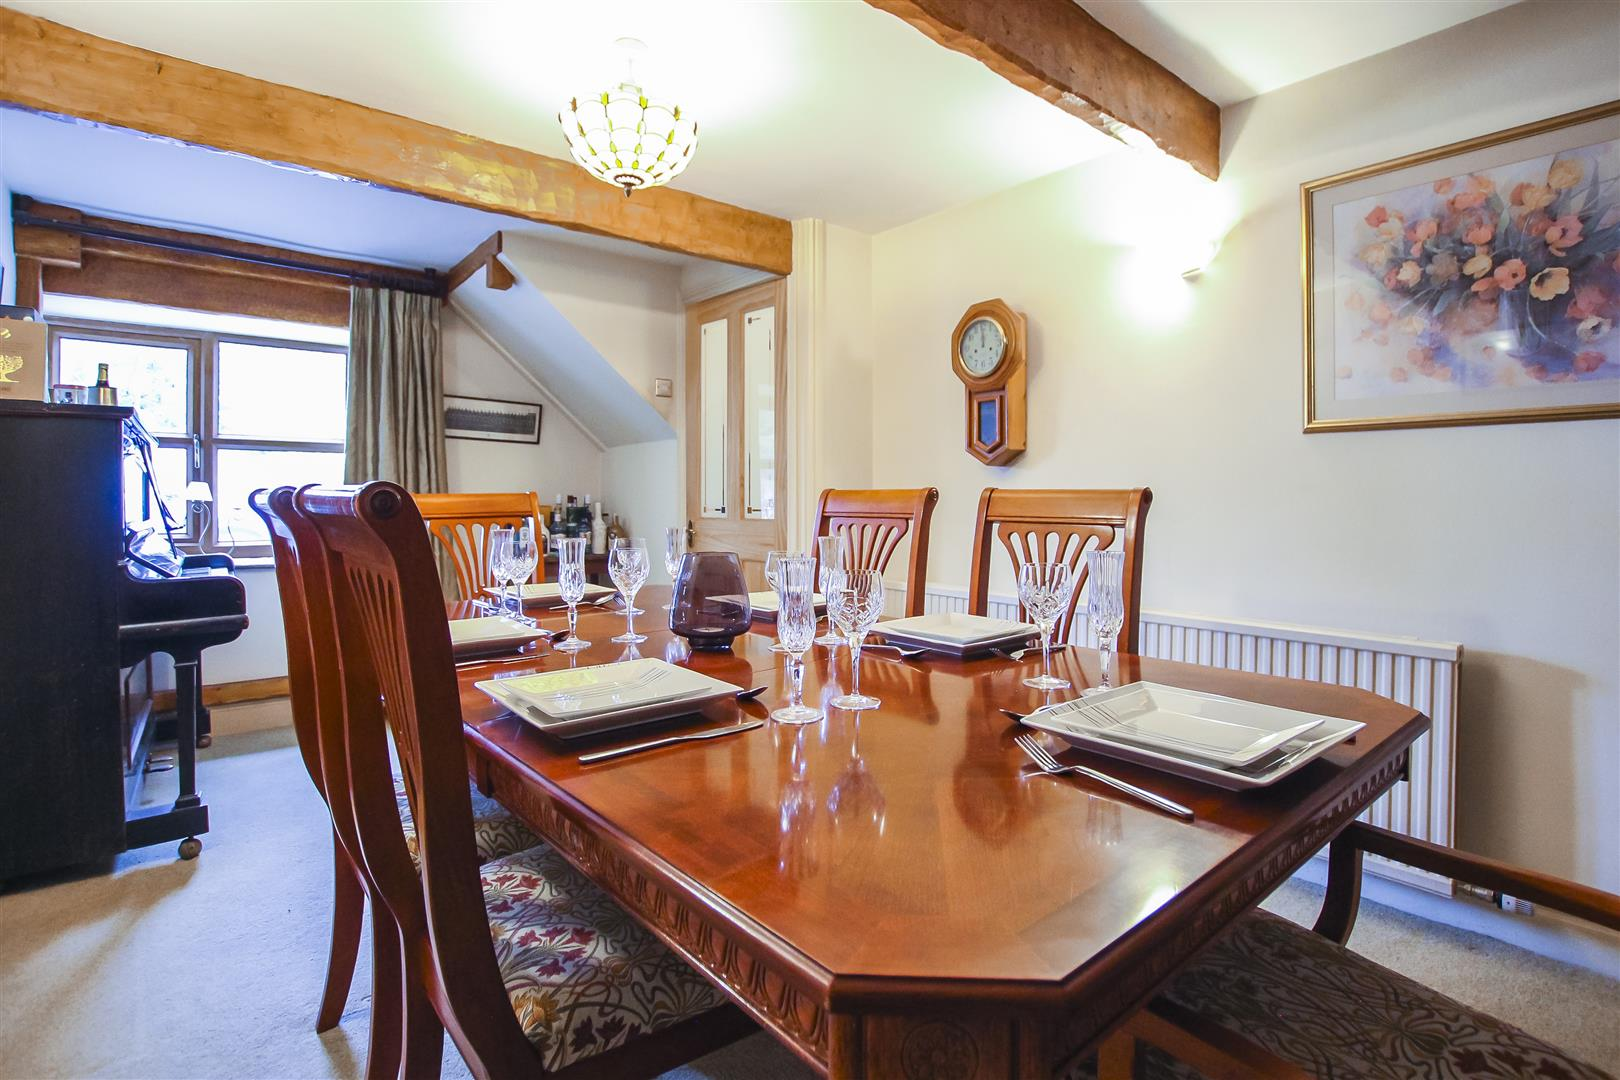 4 Bedroom Farmhouse For Sale - Image 33